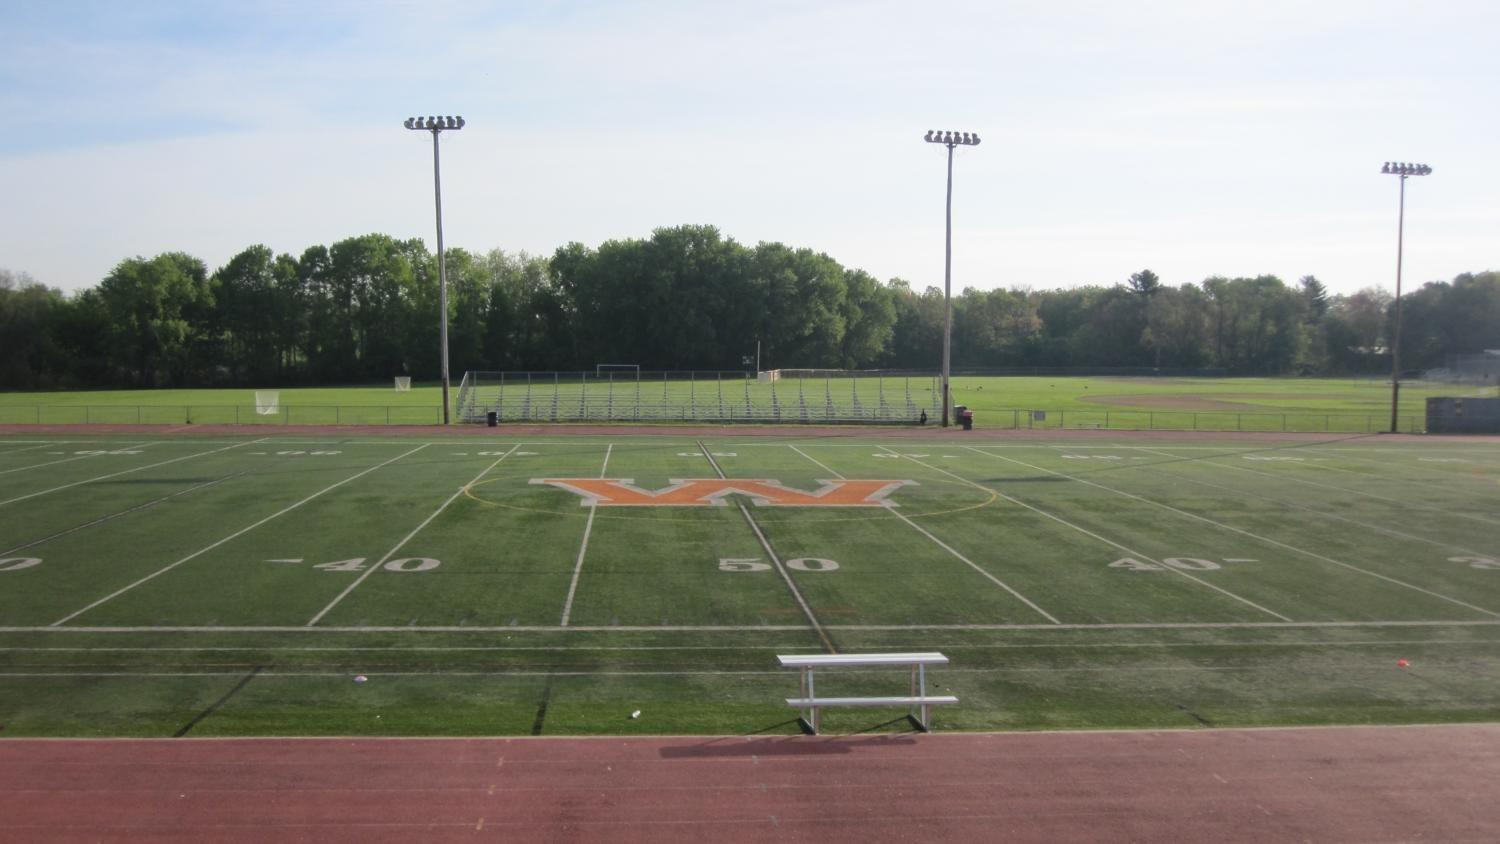 Every+athletic+field+at+Wayland+High+School+will+be+either+renovated%2C+or+repositioned+in+the+coming+years.+%E2%80%9CThe+track+is+at+the+end+of+its+useful+life%2C+the+turf+is+approaching+that+timetable+quickly%2C+I+think+we+have+bleachers+and+a+press+box+that+have+reached+the+end+of+their+useful+lives+as+well%2C%E2%80%9D+Rollins+said.+%E2%80%9CThe+tennis+courts+are+also+in+poor+condition.+So+this+is+really+of+the+essence.%E2%80%9D